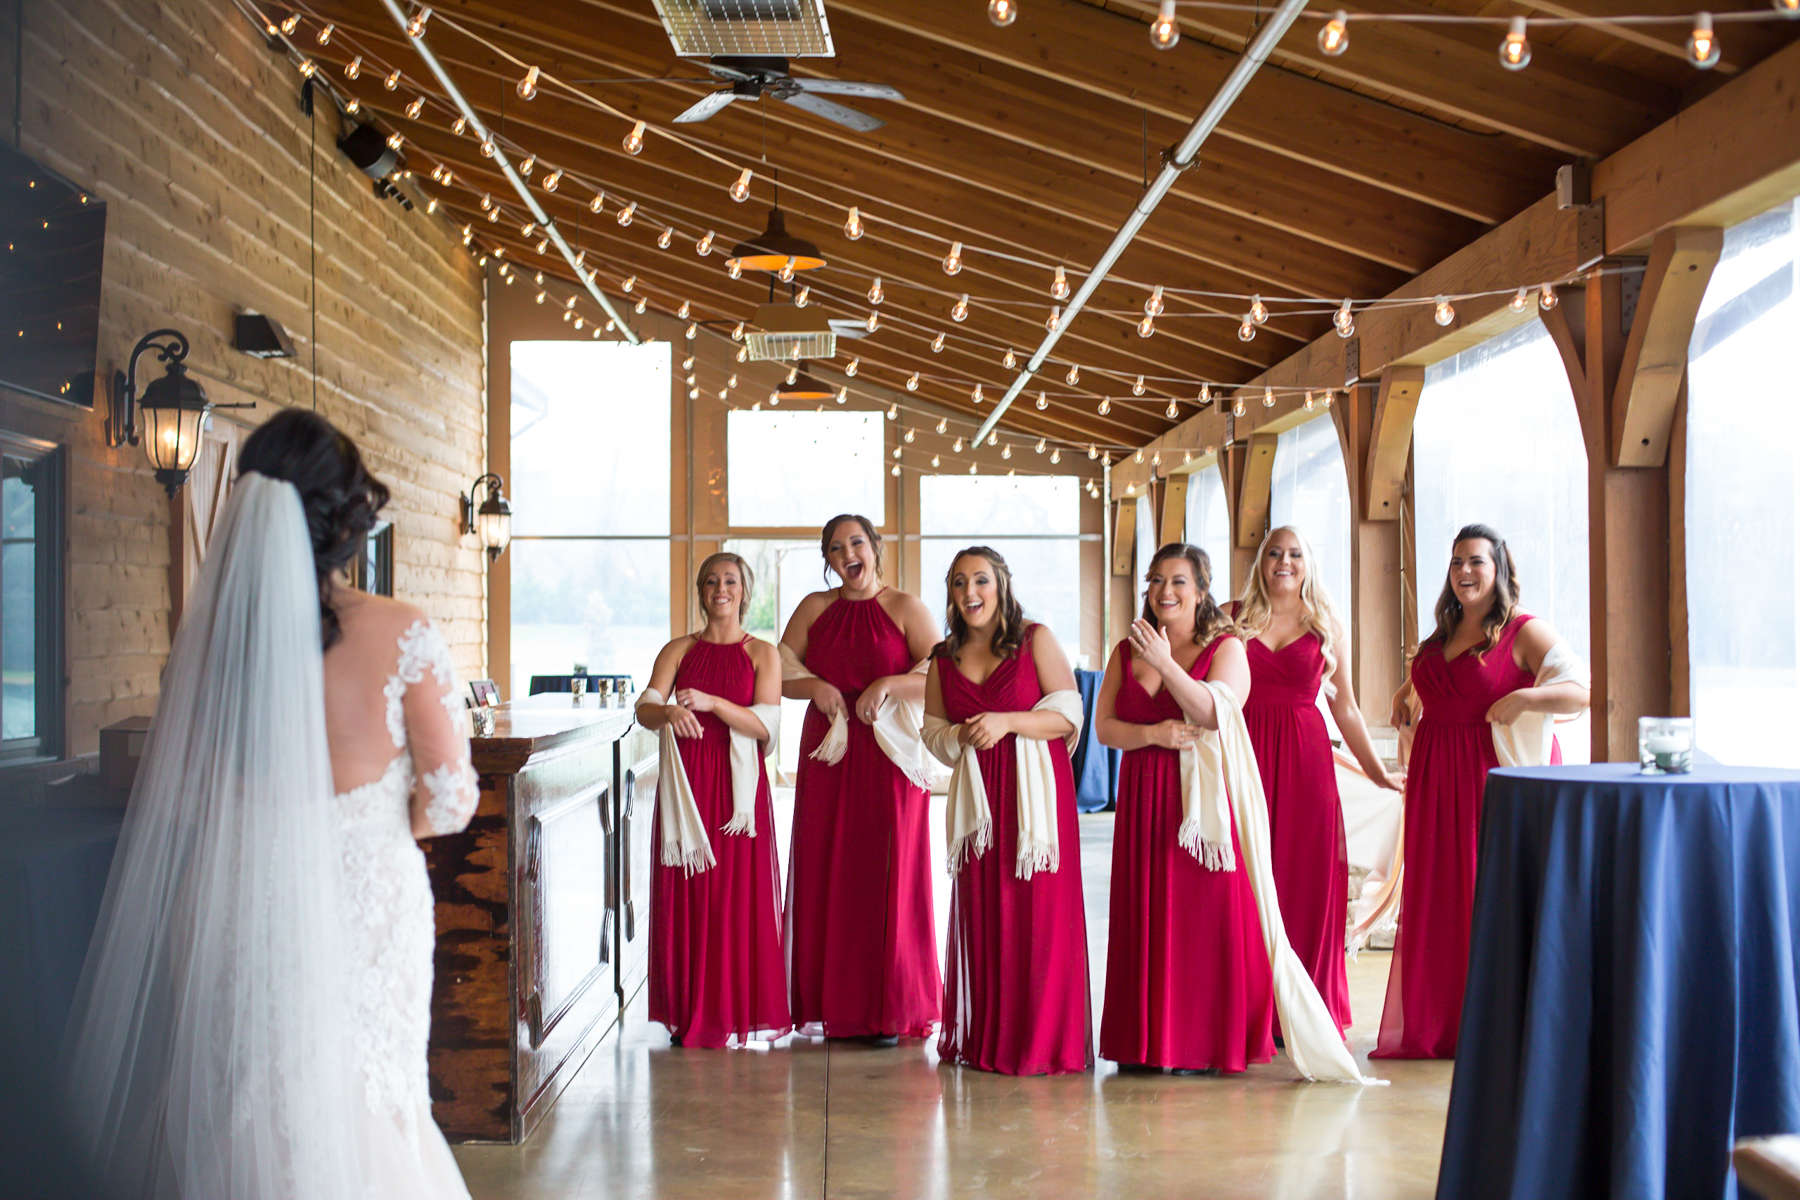 brides-first-look-with-bridesmaids-barn-at-sycamore-farms.jpg